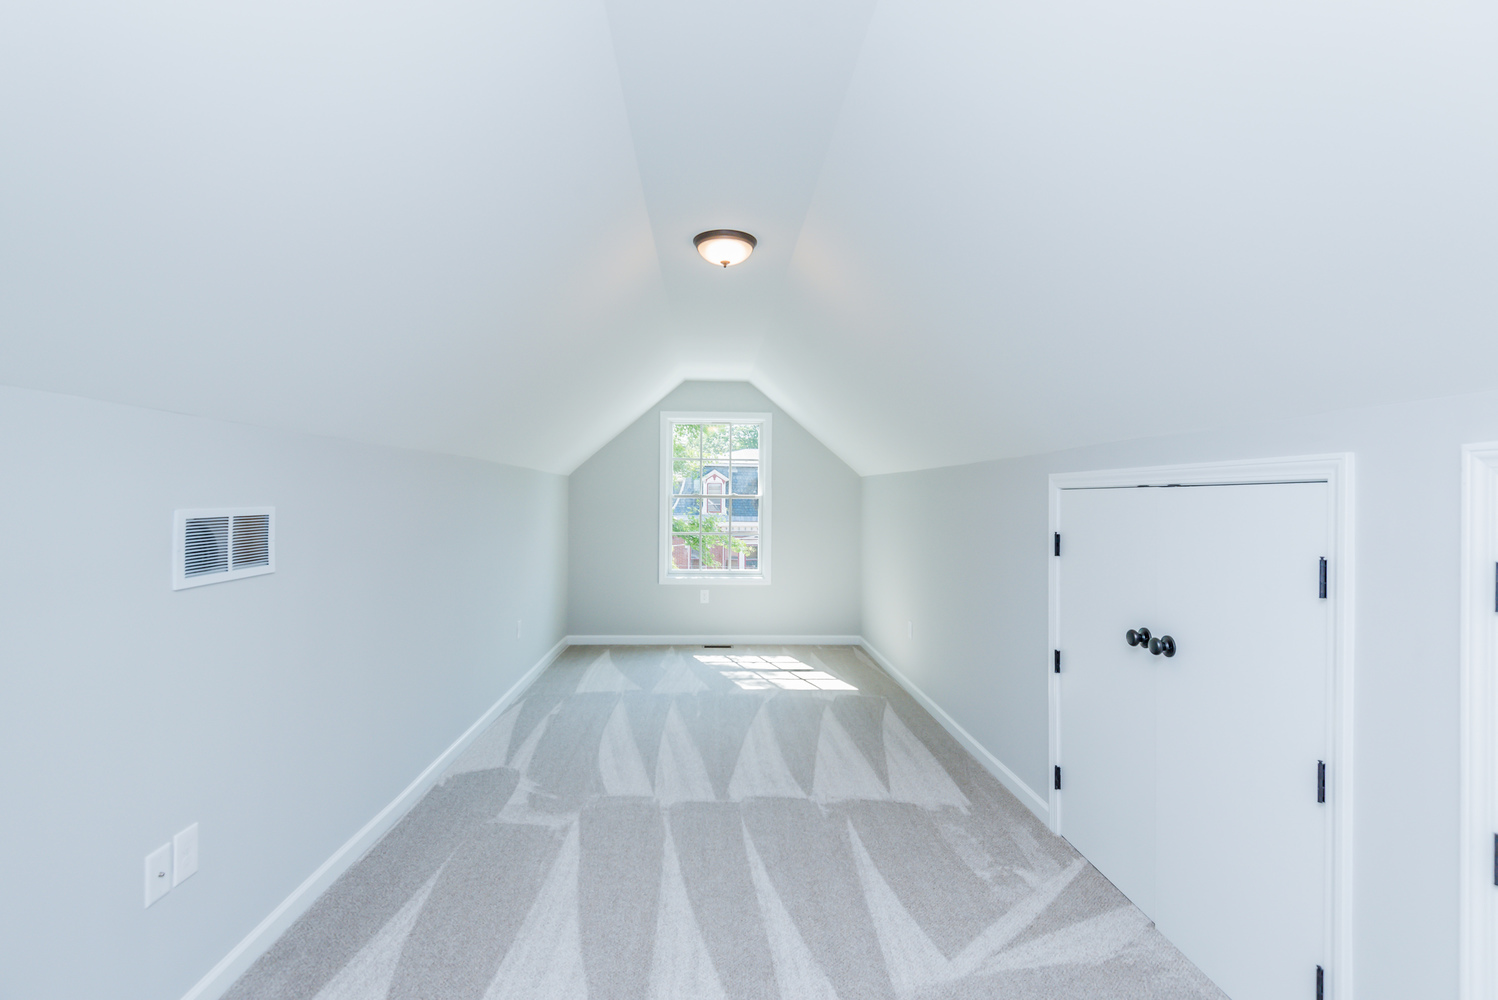 attic_front_room_1_of_1_ - Copy.jpg